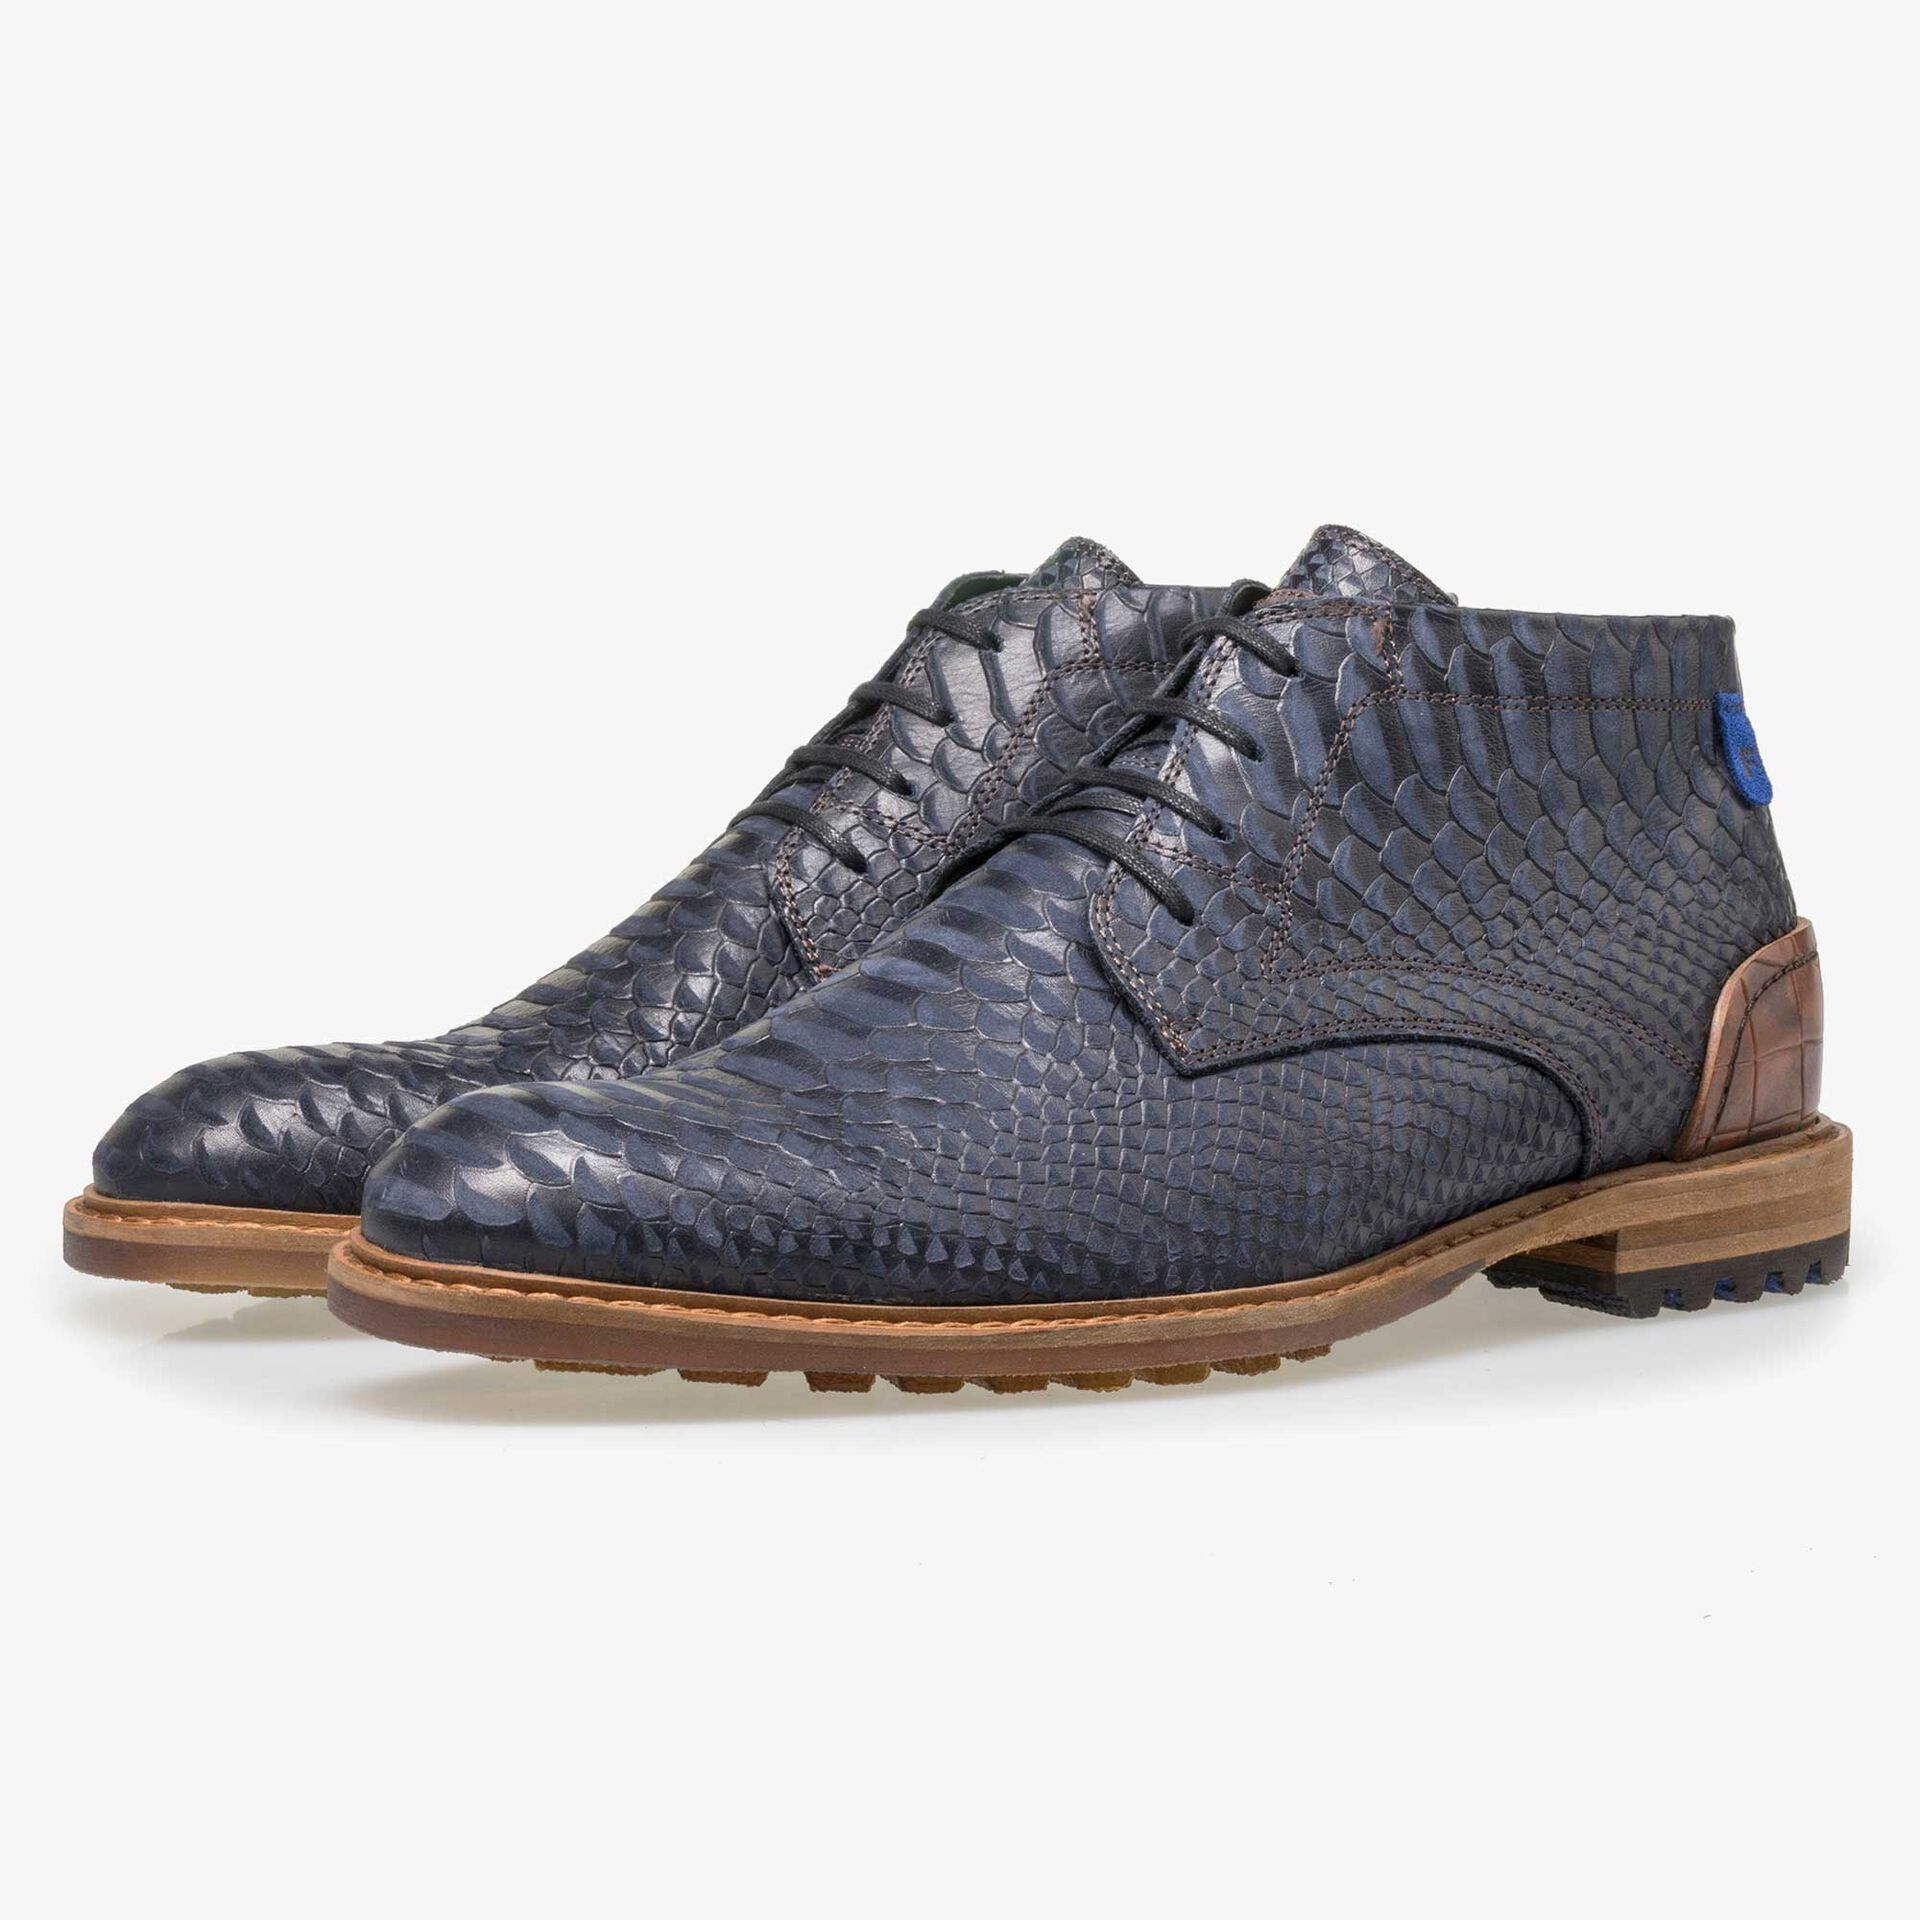 Floris van Bommel men's blue leather lace boot finished with a snake print